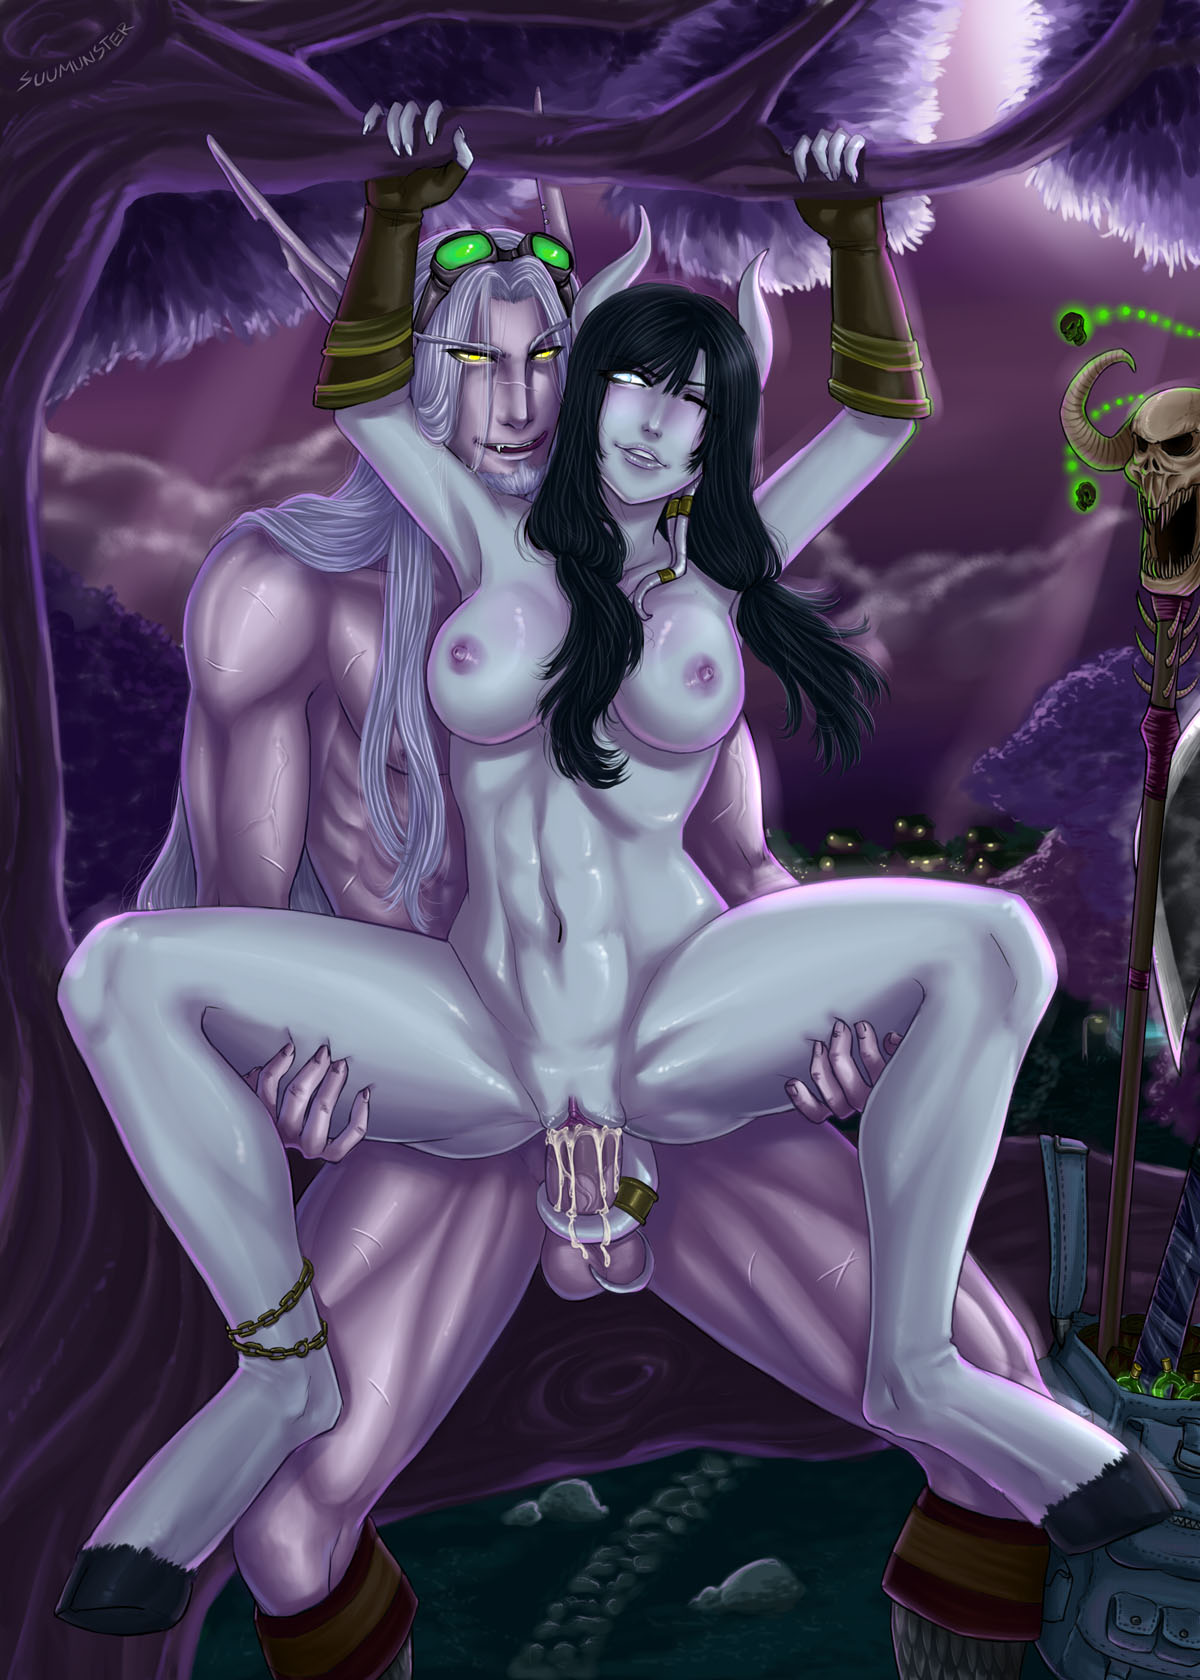 Blood elf sex pic pron scene